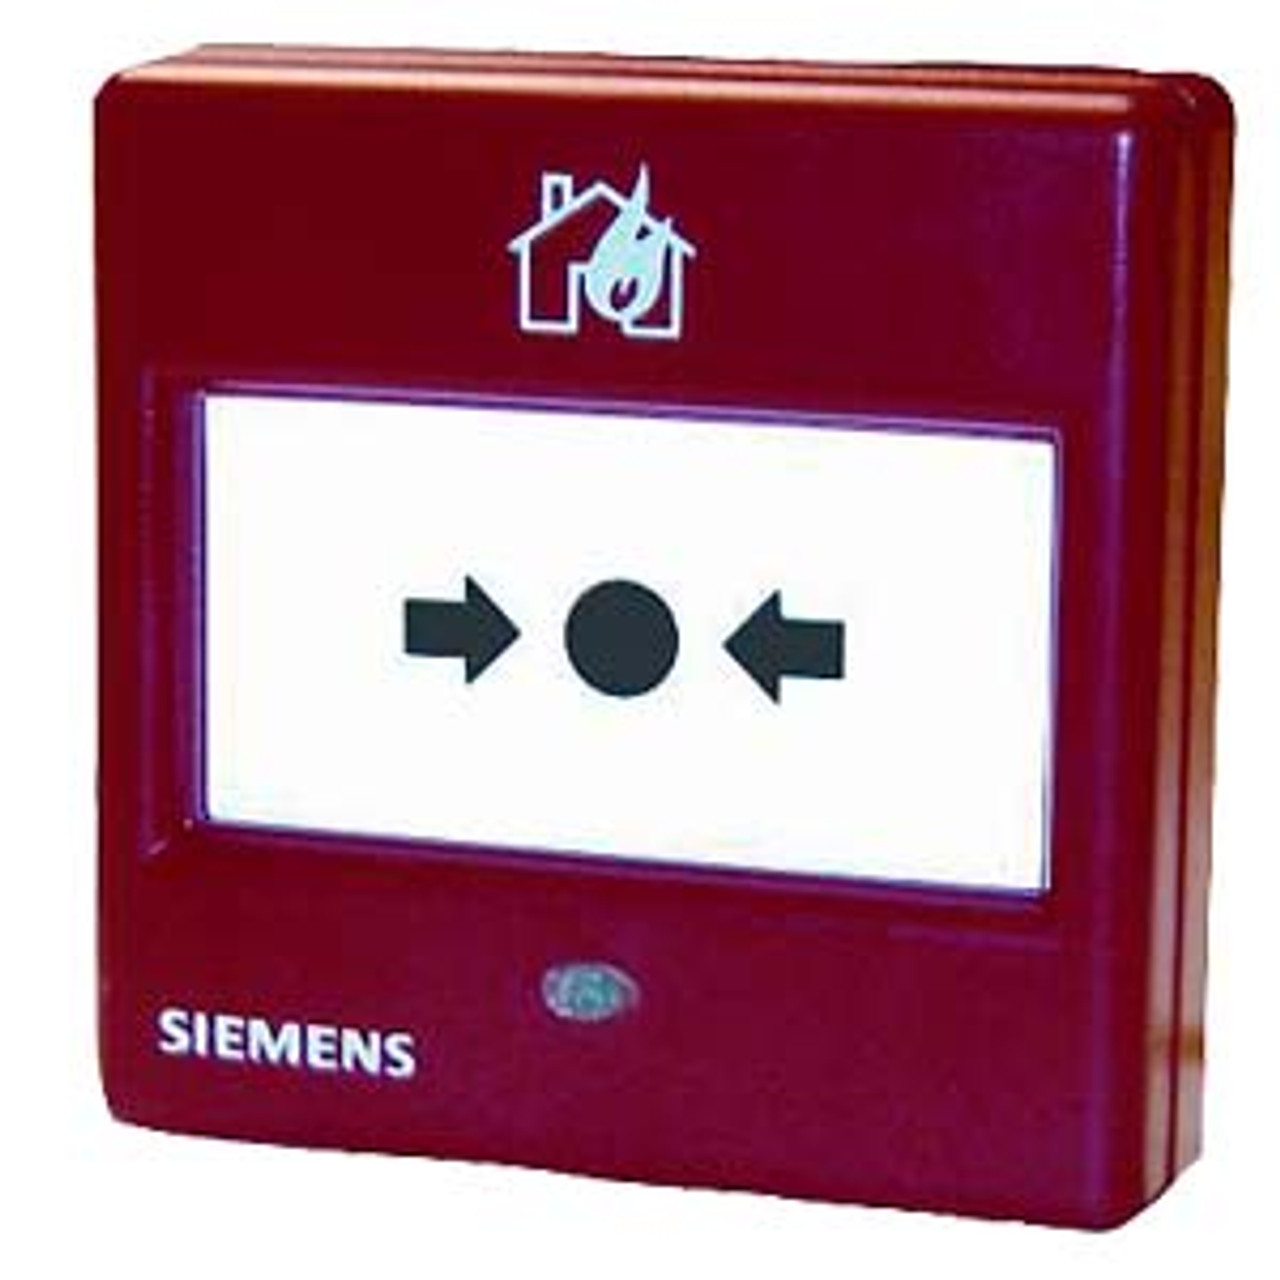 Siemens FDM225-RP, A5Q00012020, Manual call point with resettable plastic element